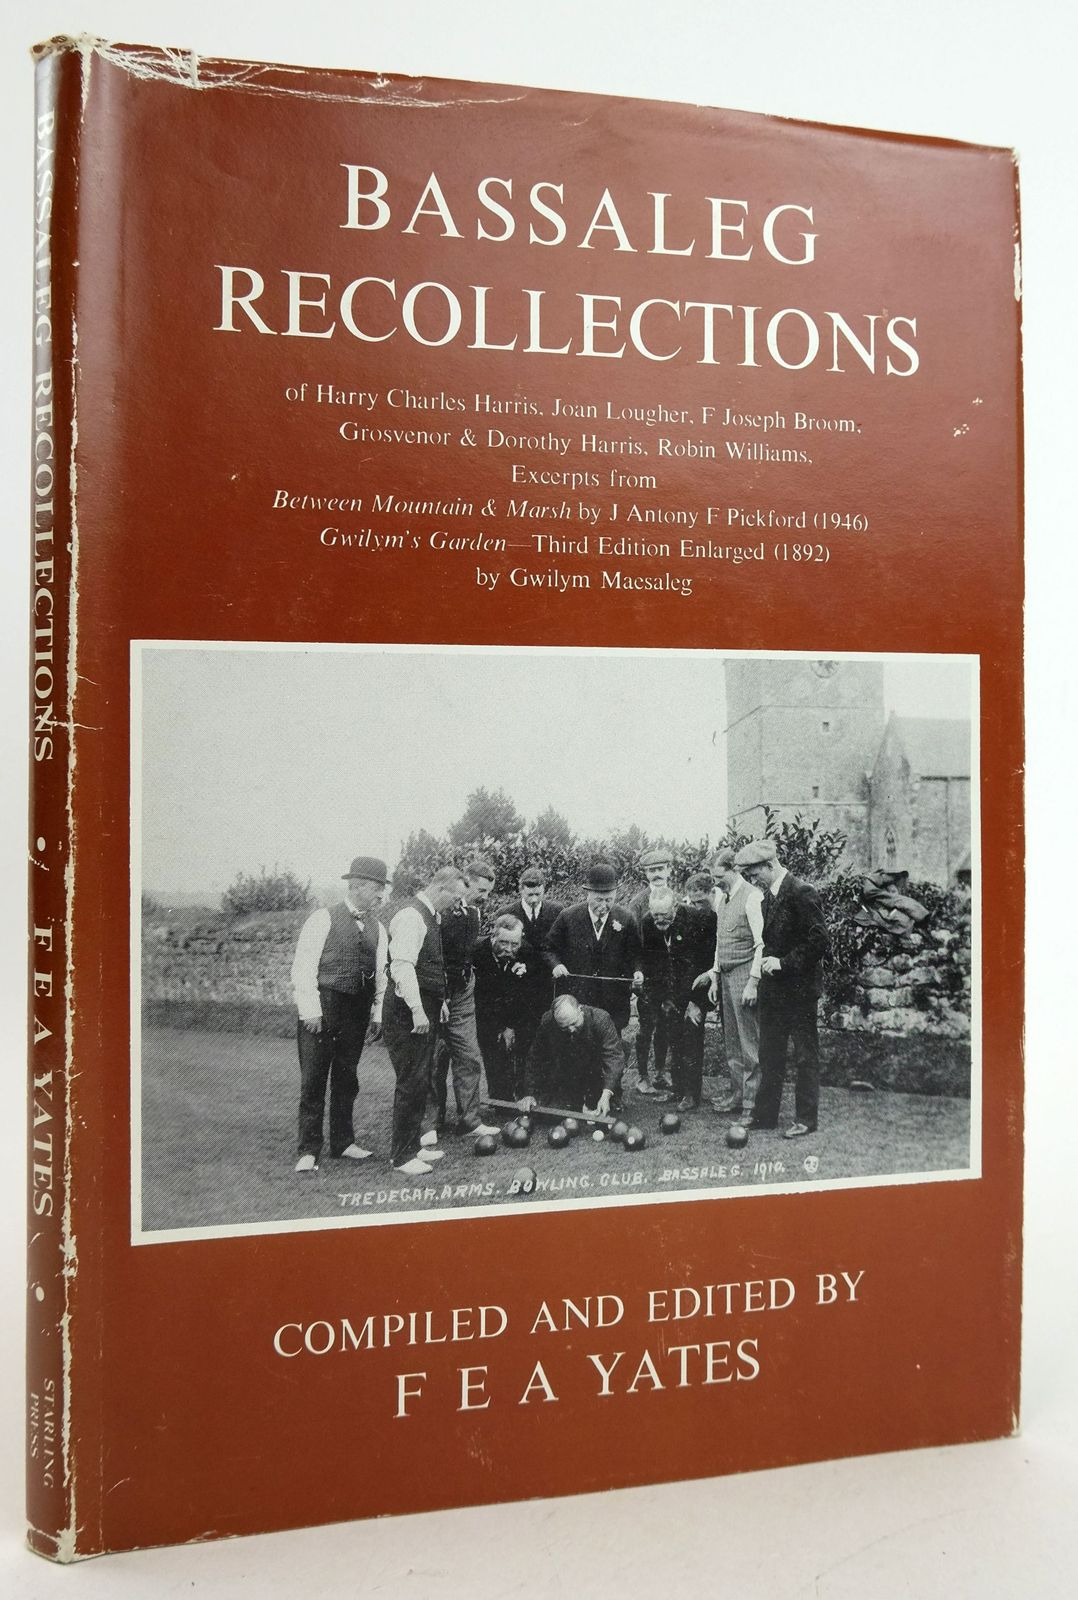 Photo of BASSALEG RECOLLECTIONS- Stock Number: 1819428